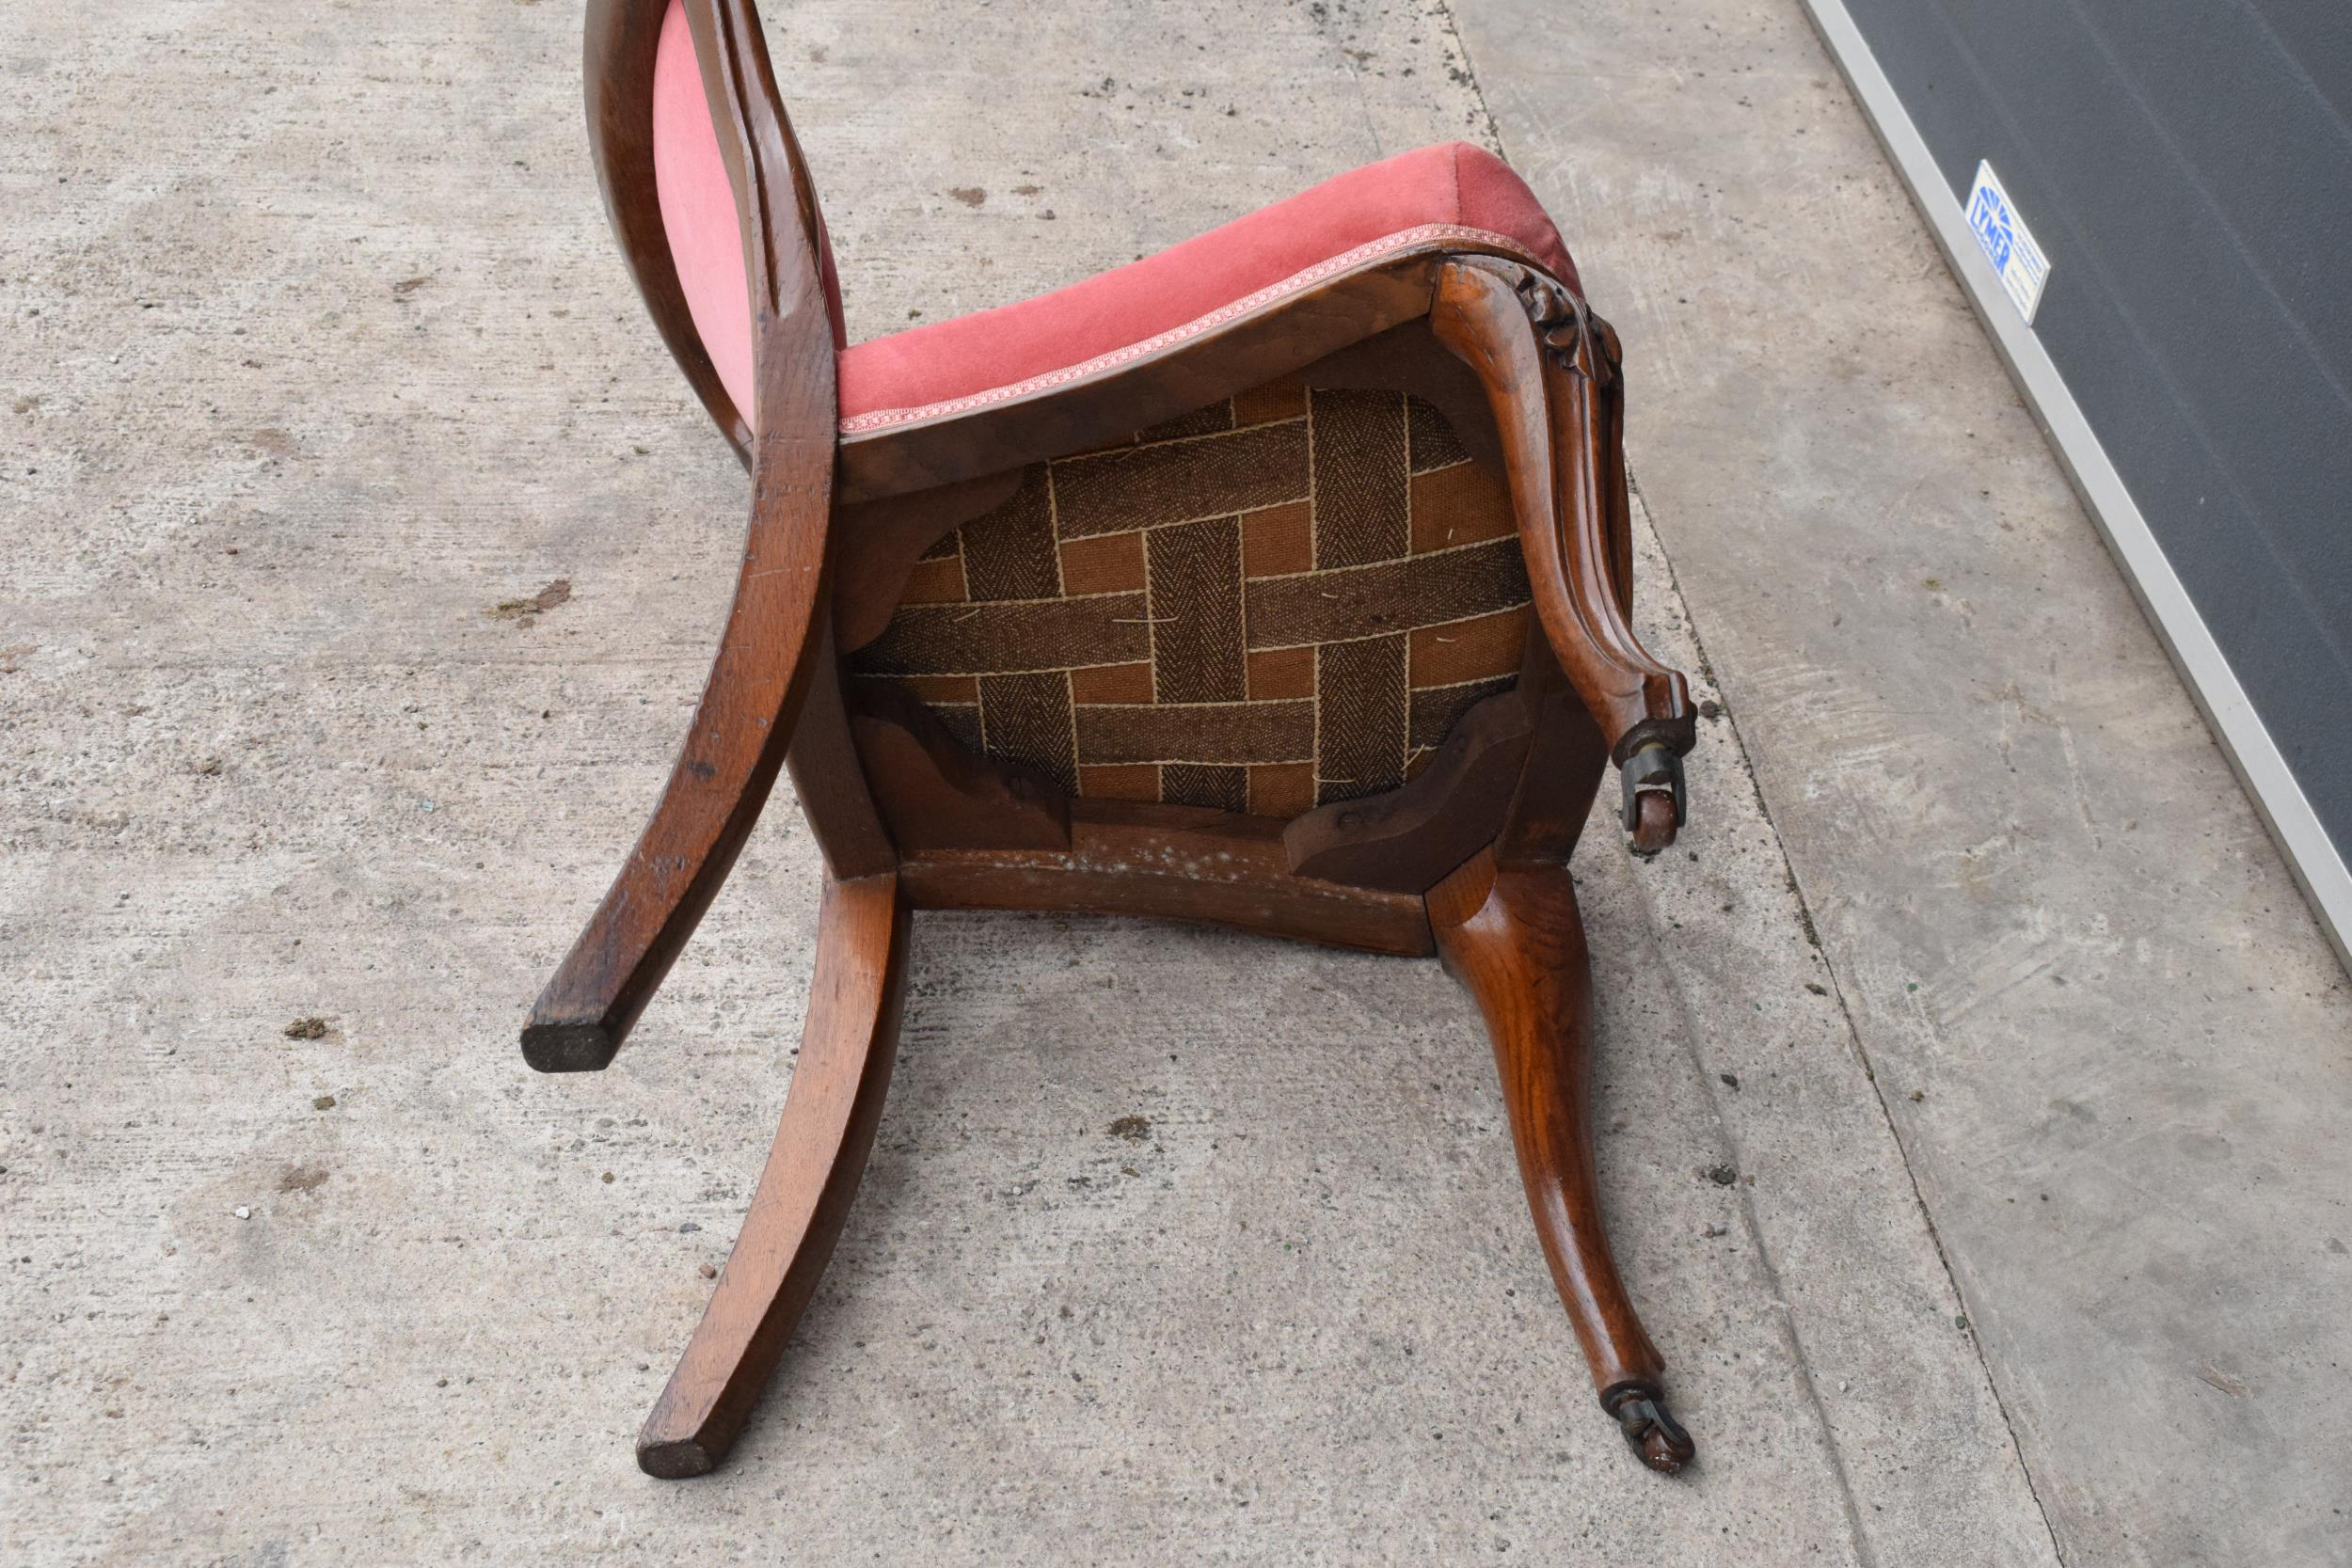 Edwardian upholstered parlour chair with pink upholstery. 90cm tall. - Image 6 of 6